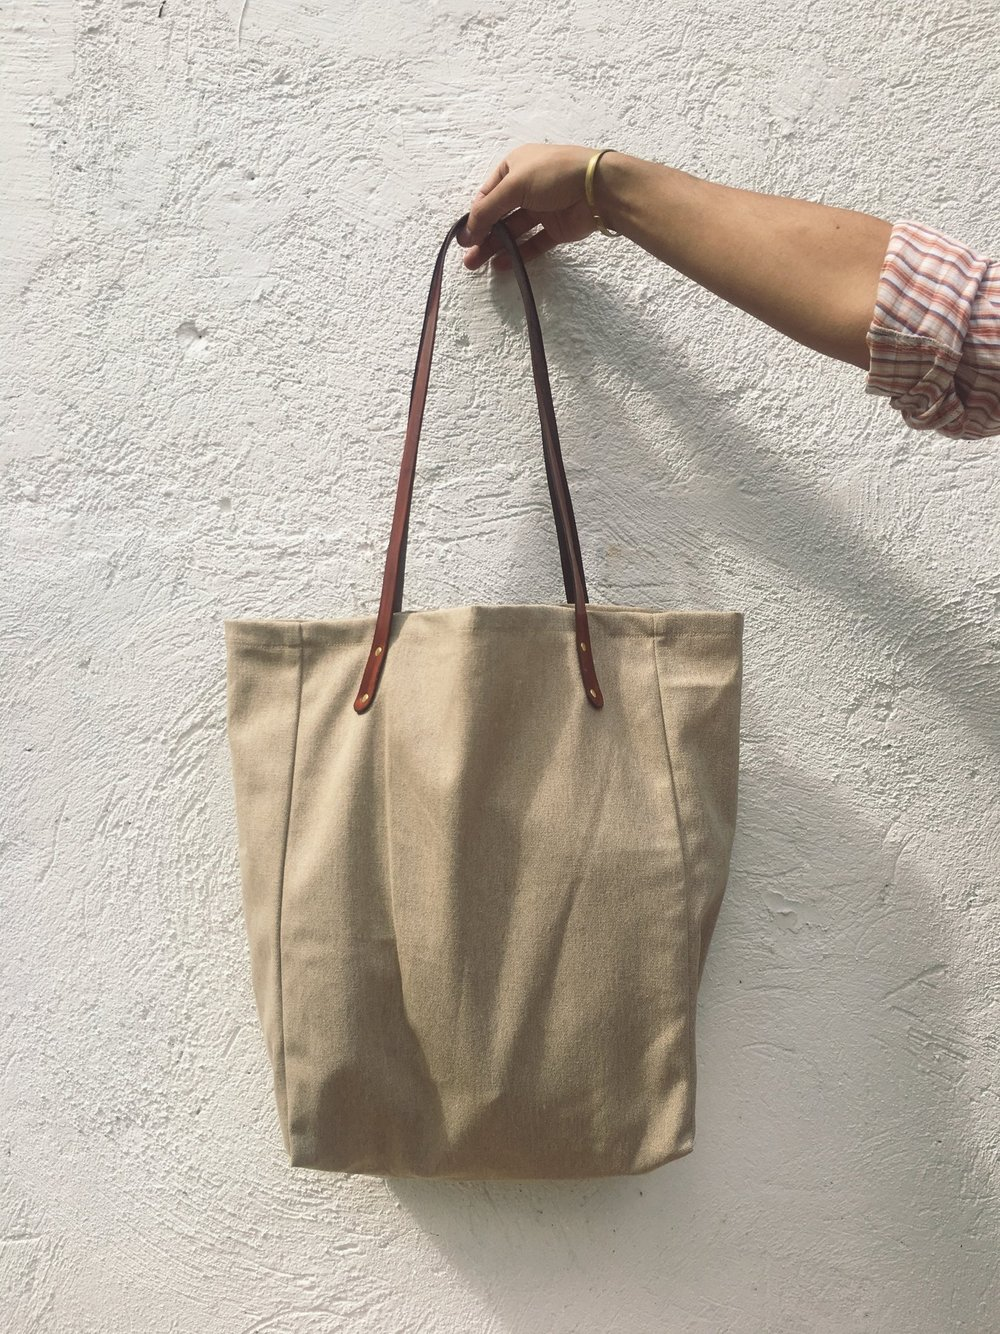 DON PEDRO TOTE BAG - we just dropped a limited run of canvas tote bags with hand dyed veg tan leather straps and solid brass hardware.